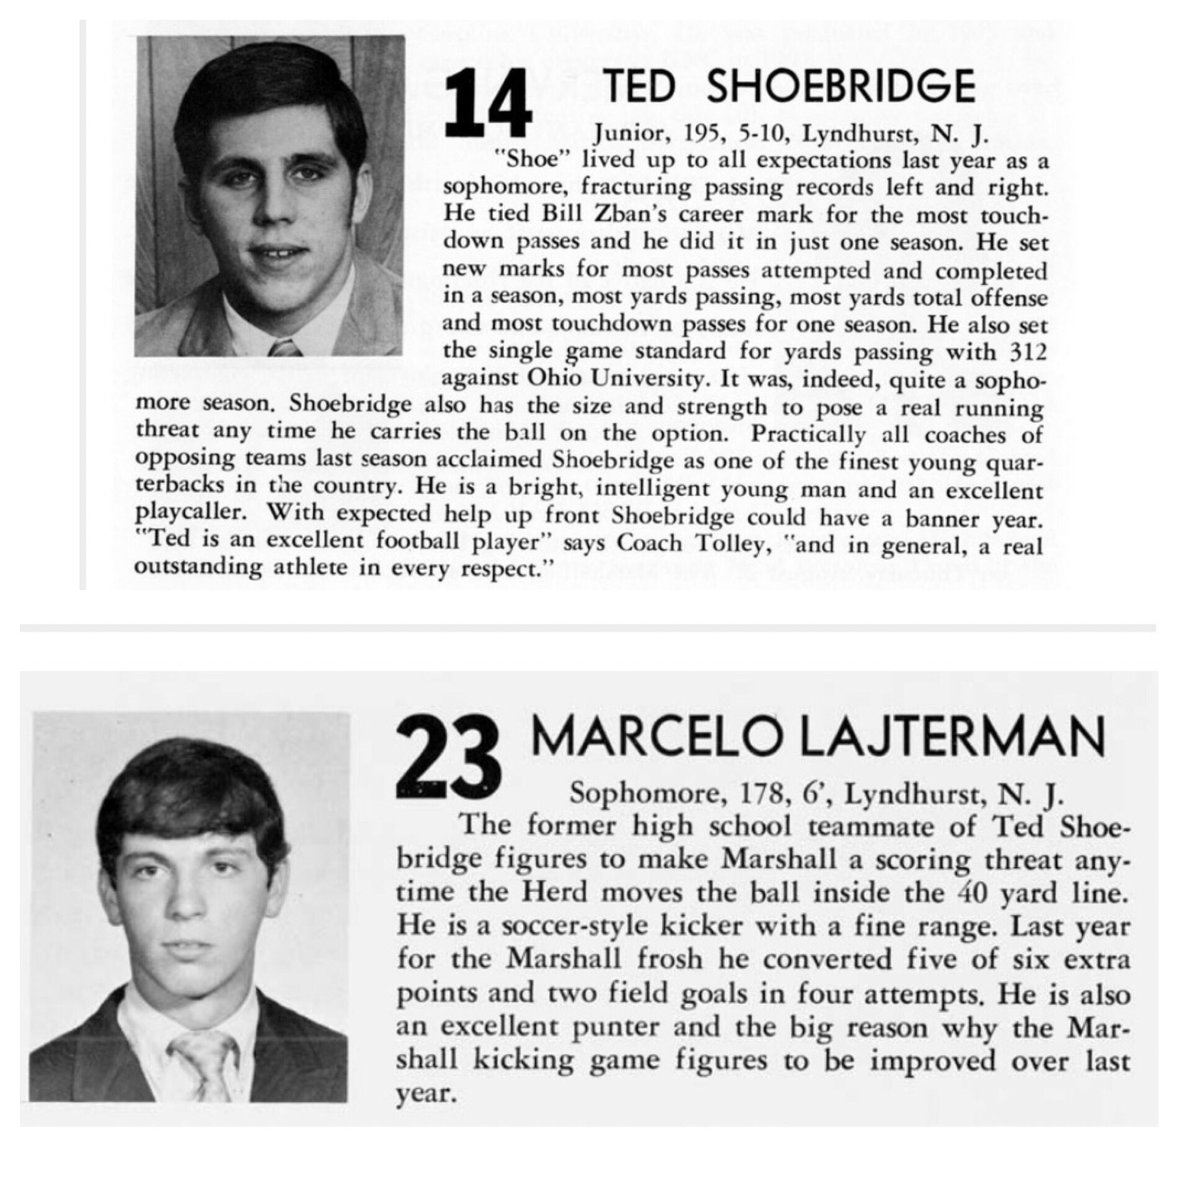 Today, on the anniversary of the Marshall University Plane Crash, we remember these two gentlemen who, I believe, will be watching down on our boys Friday night. @HerdFB #WeAreLyndhurst #WeAreMarshall<br>http://pic.twitter.com/Mcf5kuuReg